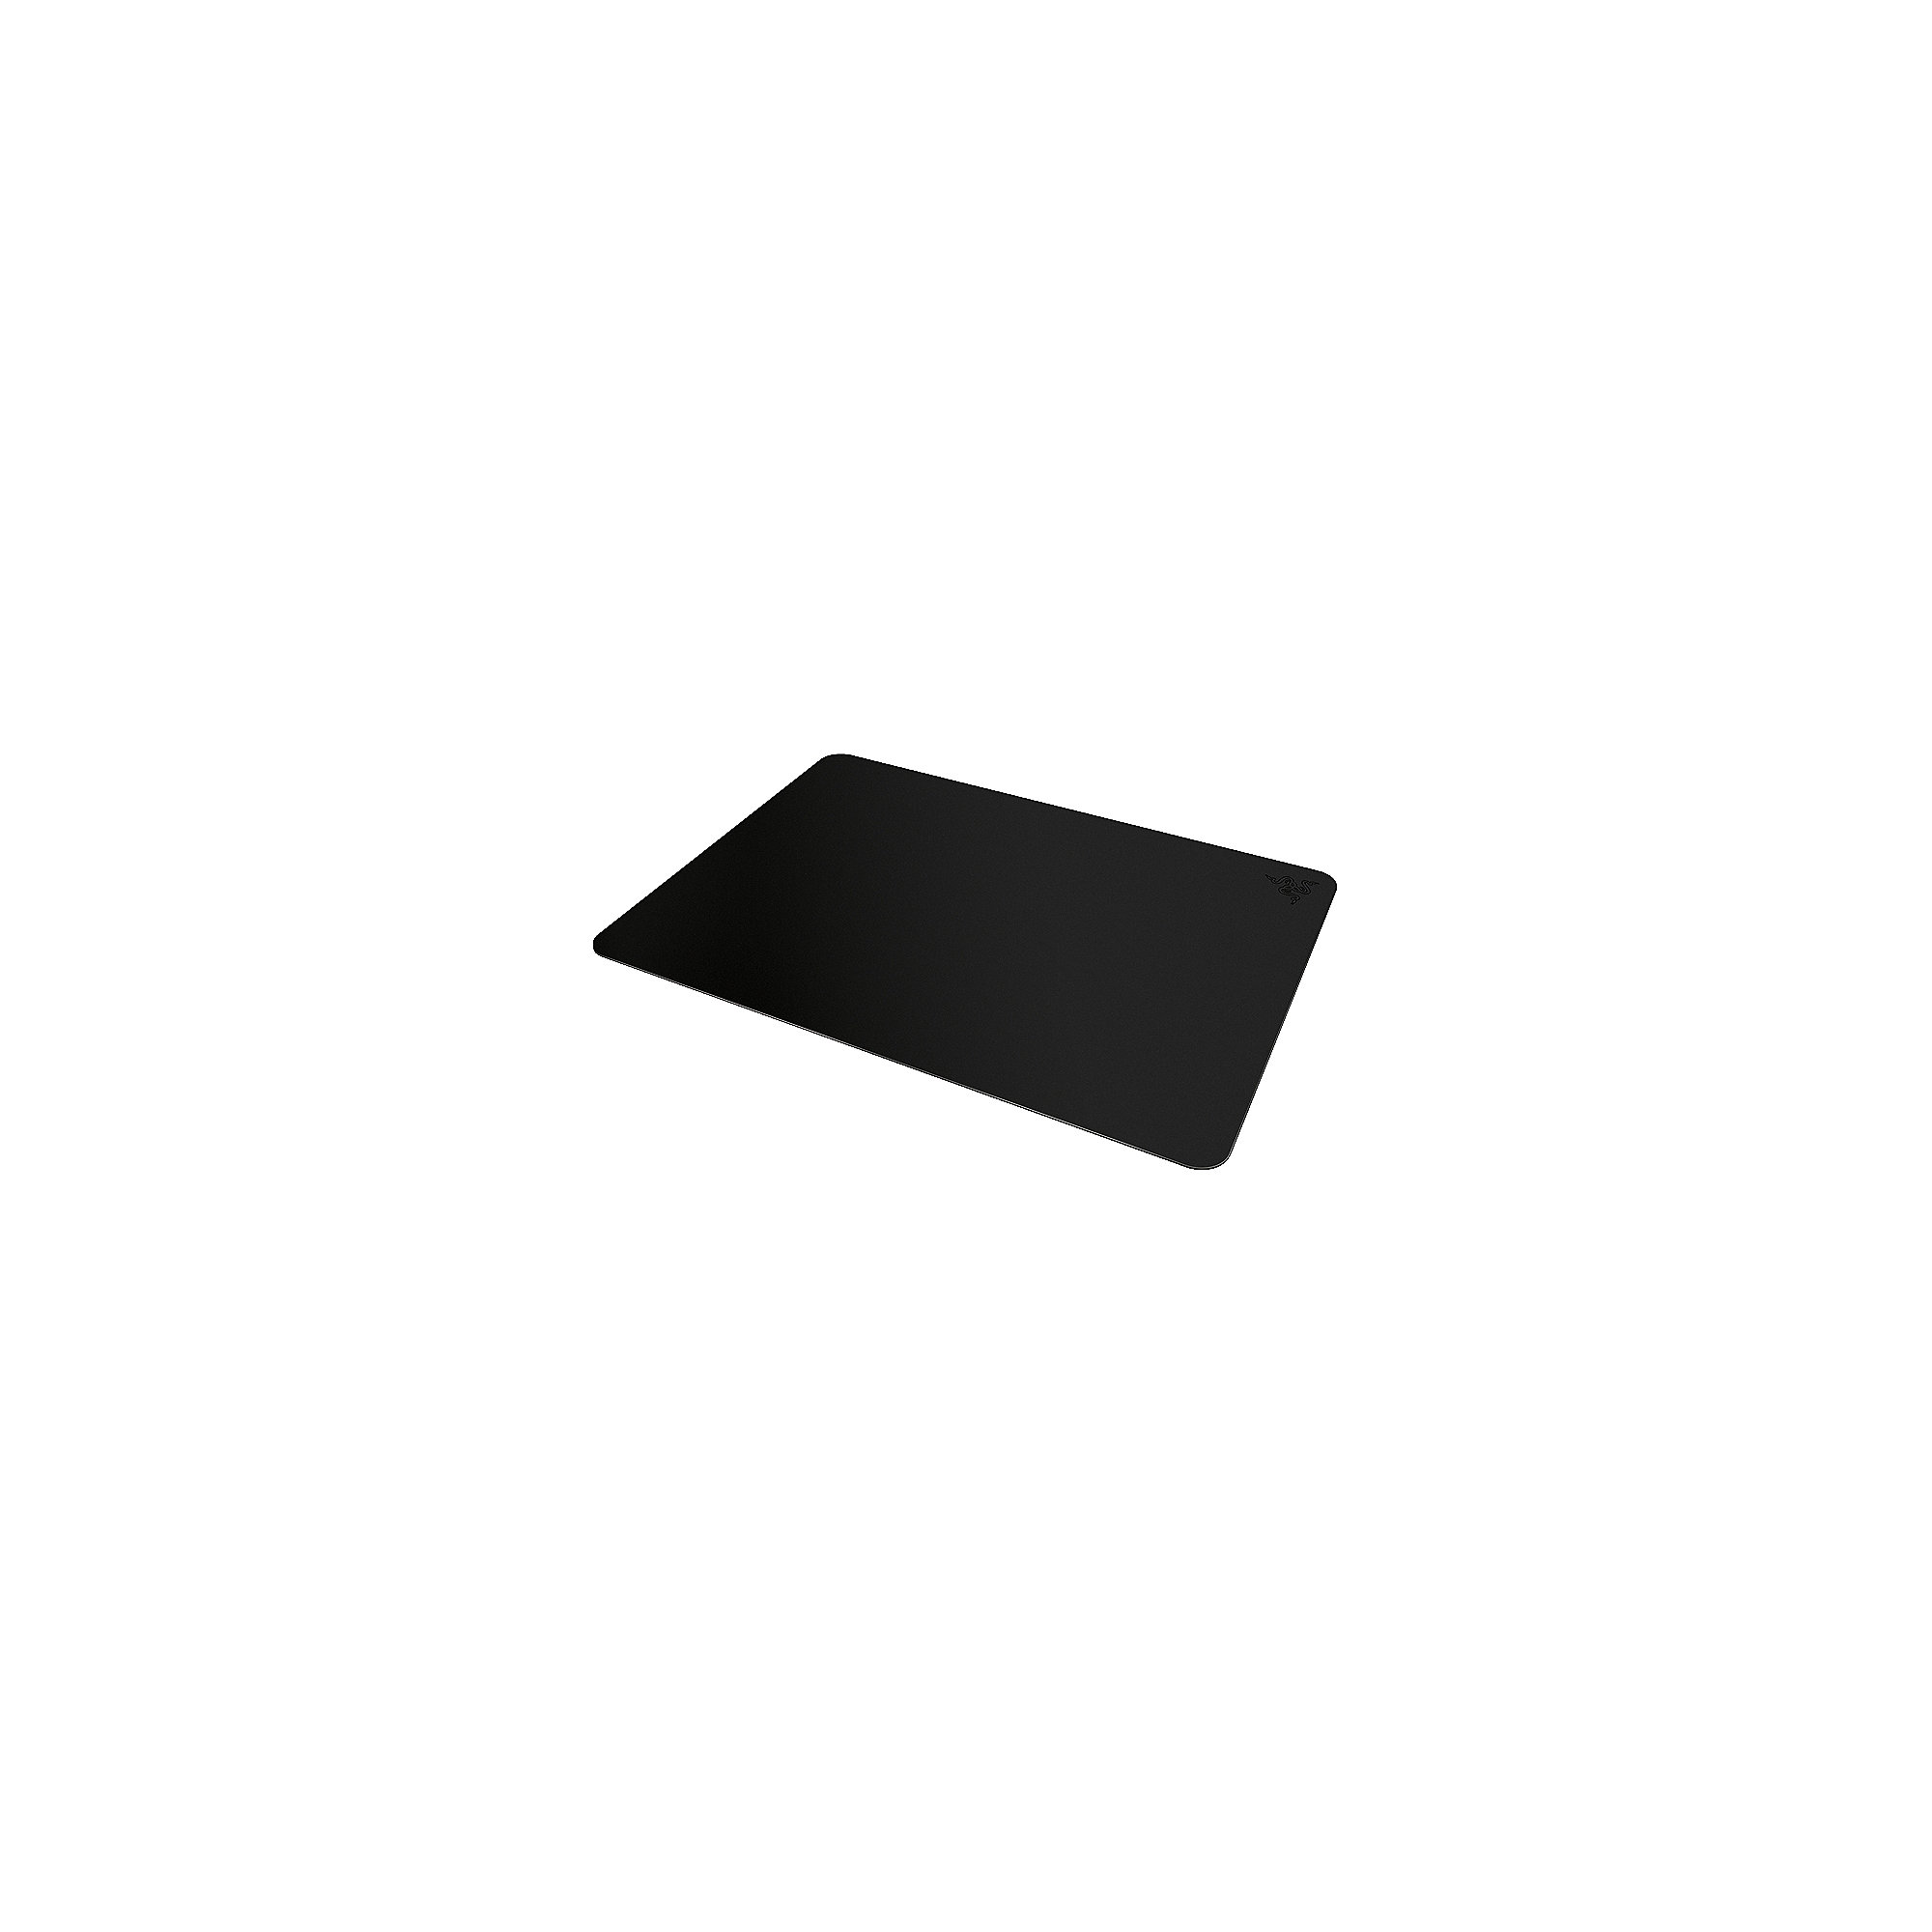 Razer MANTICOR Elite Aluminium Gaming Mousepad